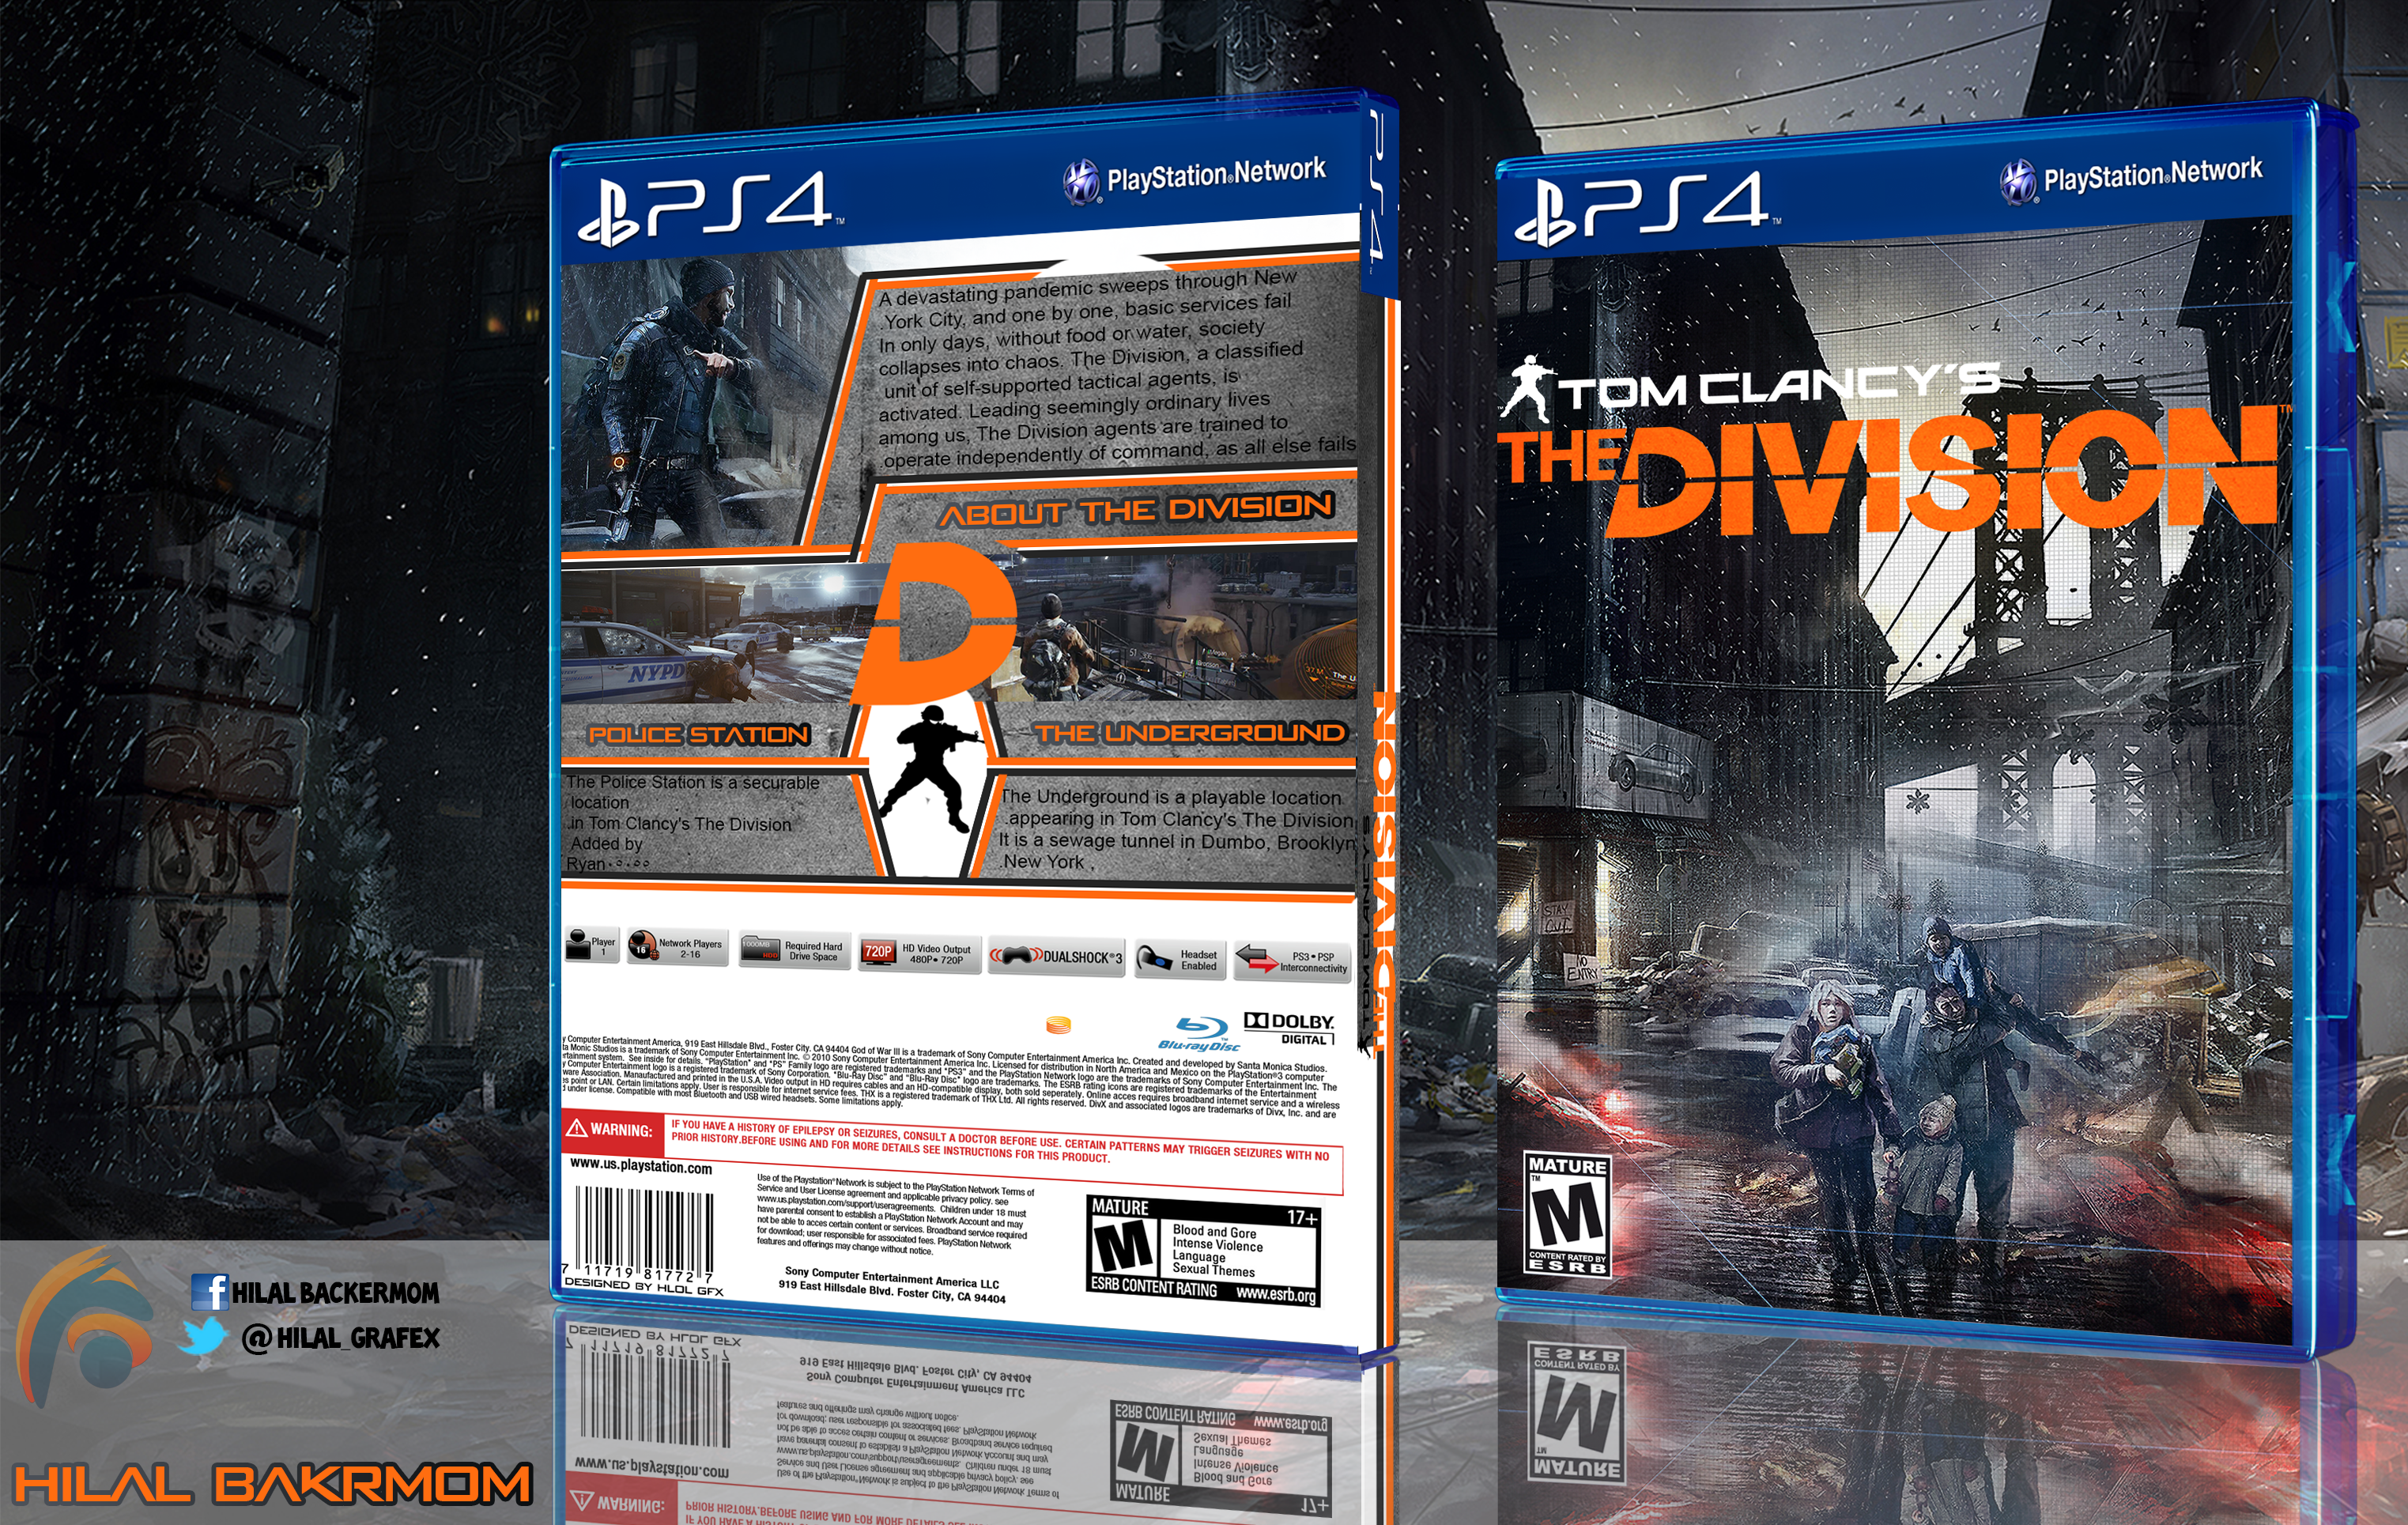 tom clancy 39 s the division box cover ps4 by hohogfx on deviantart. Black Bedroom Furniture Sets. Home Design Ideas